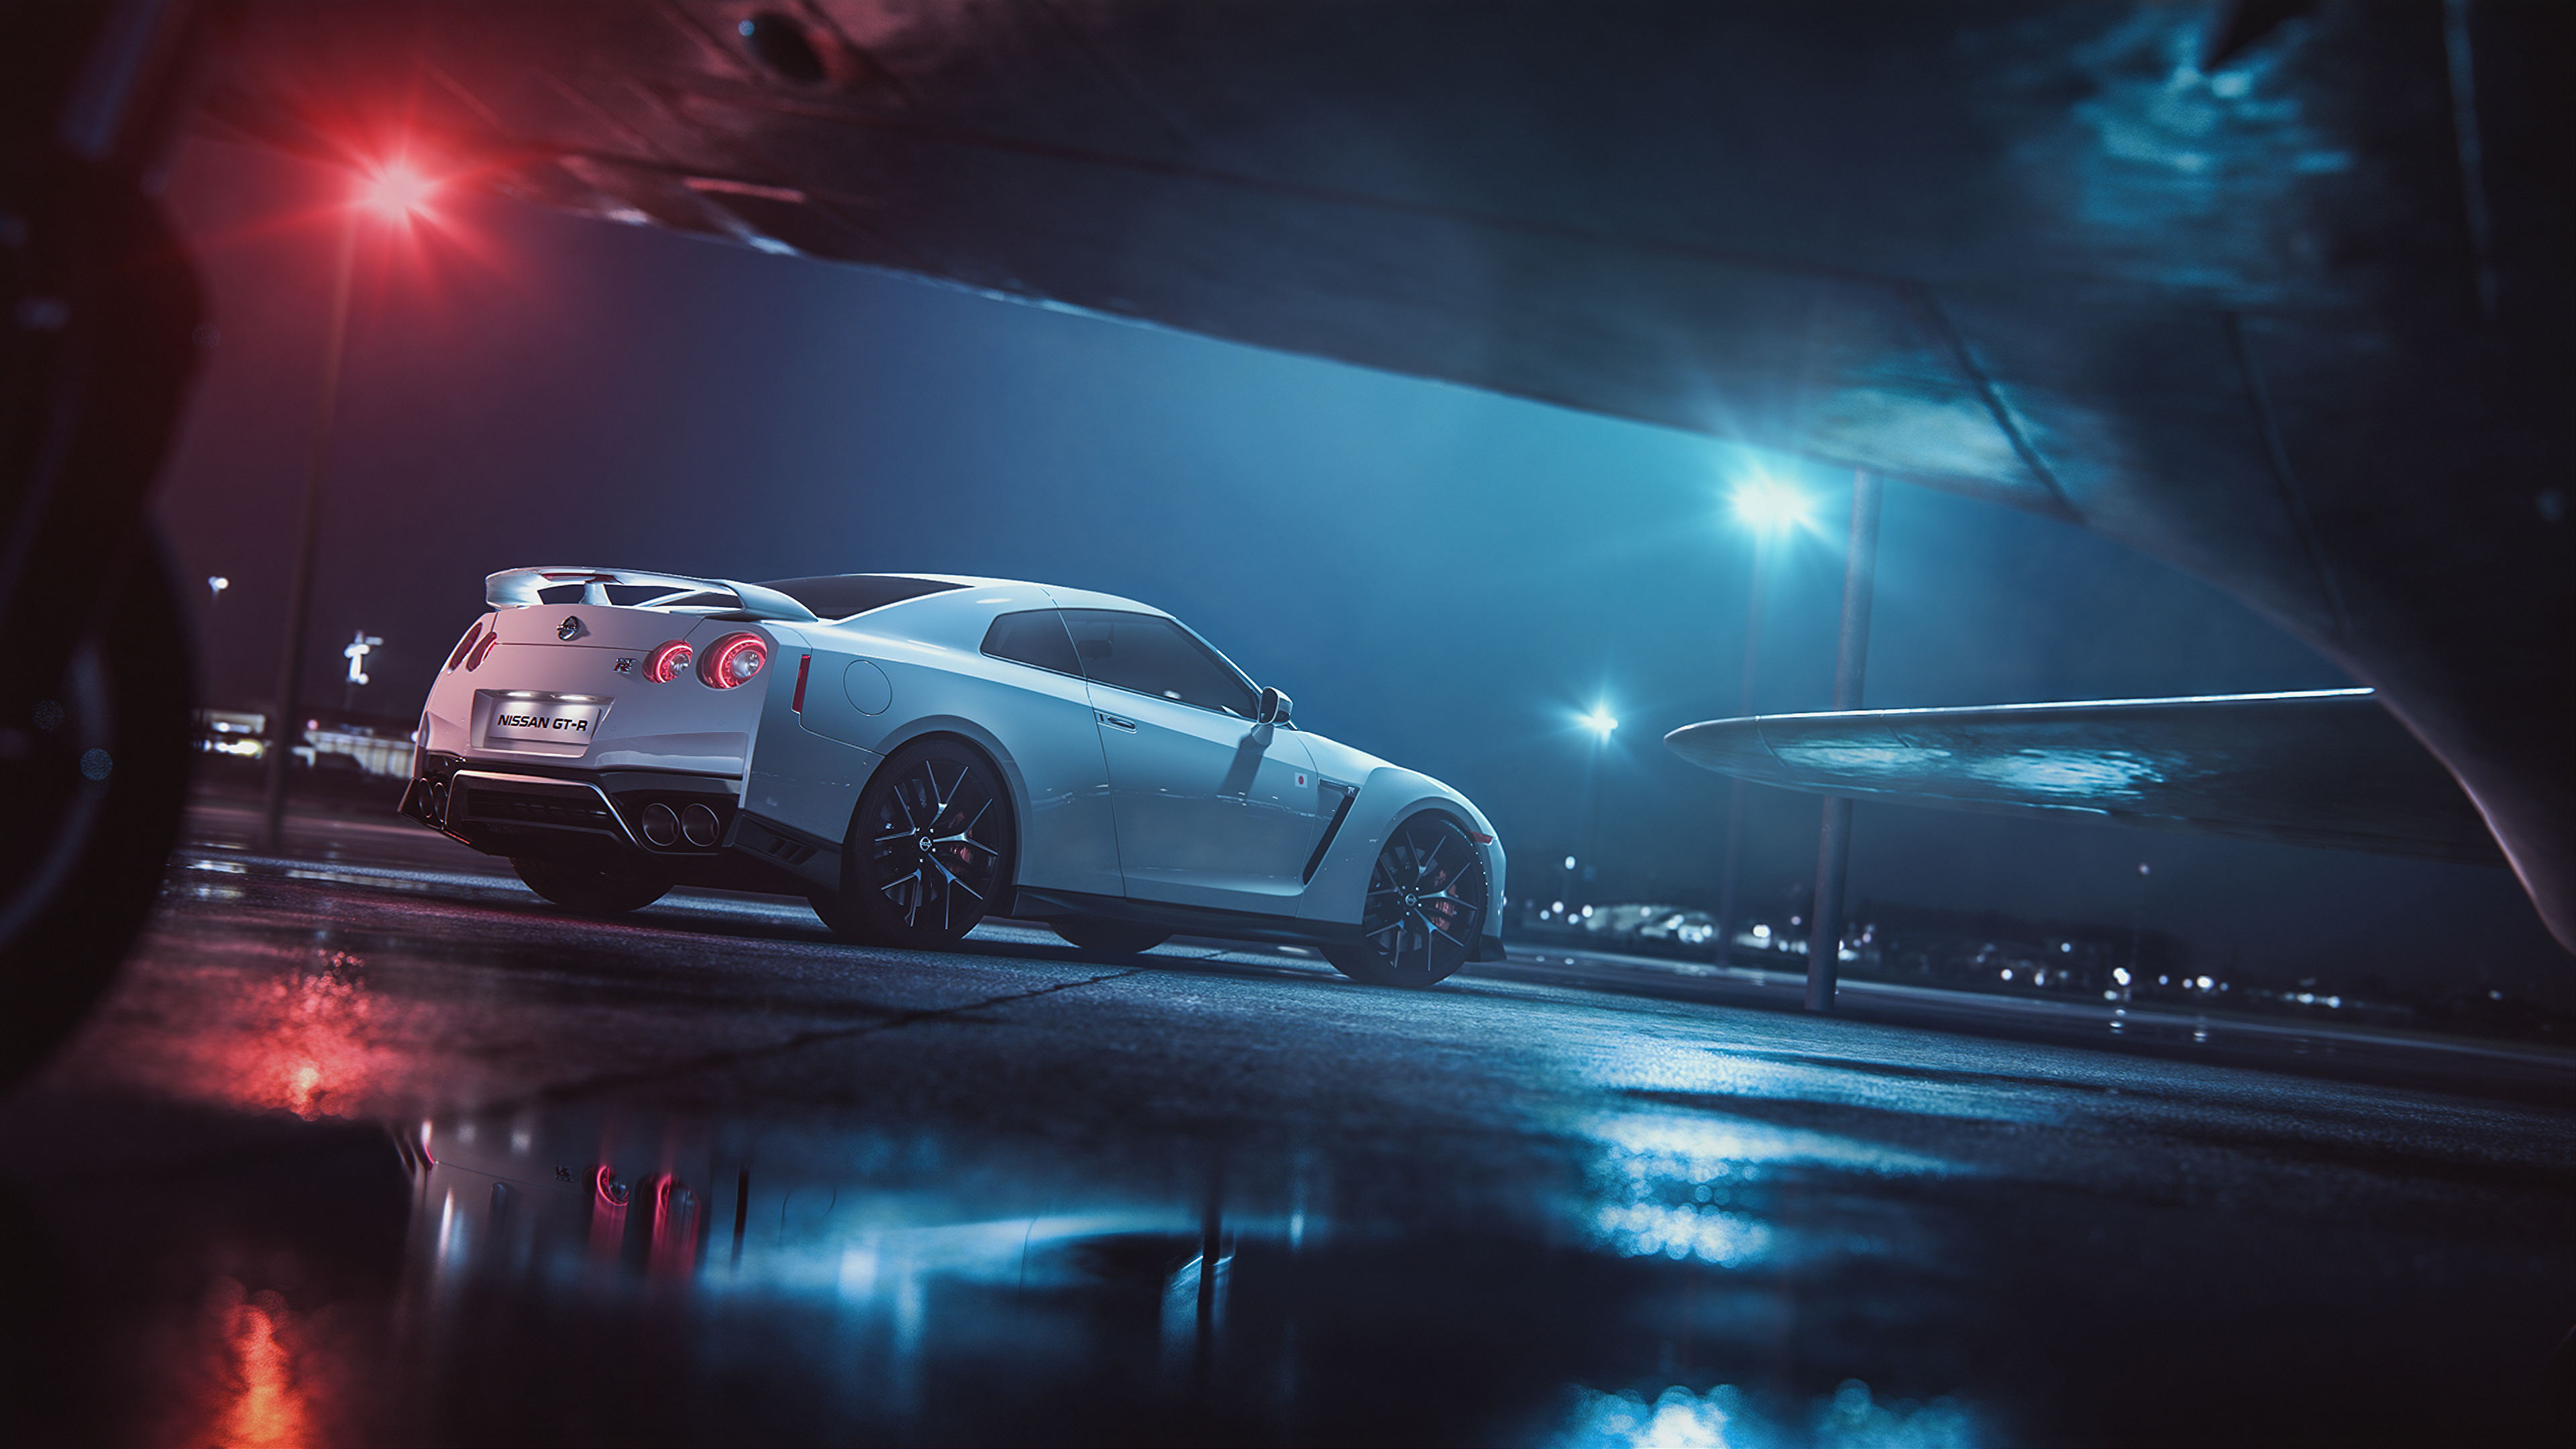 a6m2 zero with nissan gtr c 1562108073 - A6M2 ZERO With Nissan GTR C - nissan wallpapers, nissan gtr wallpapers, hd-wallpapers, cars wallpapers, behance wallpapers, 4k-wallpapers